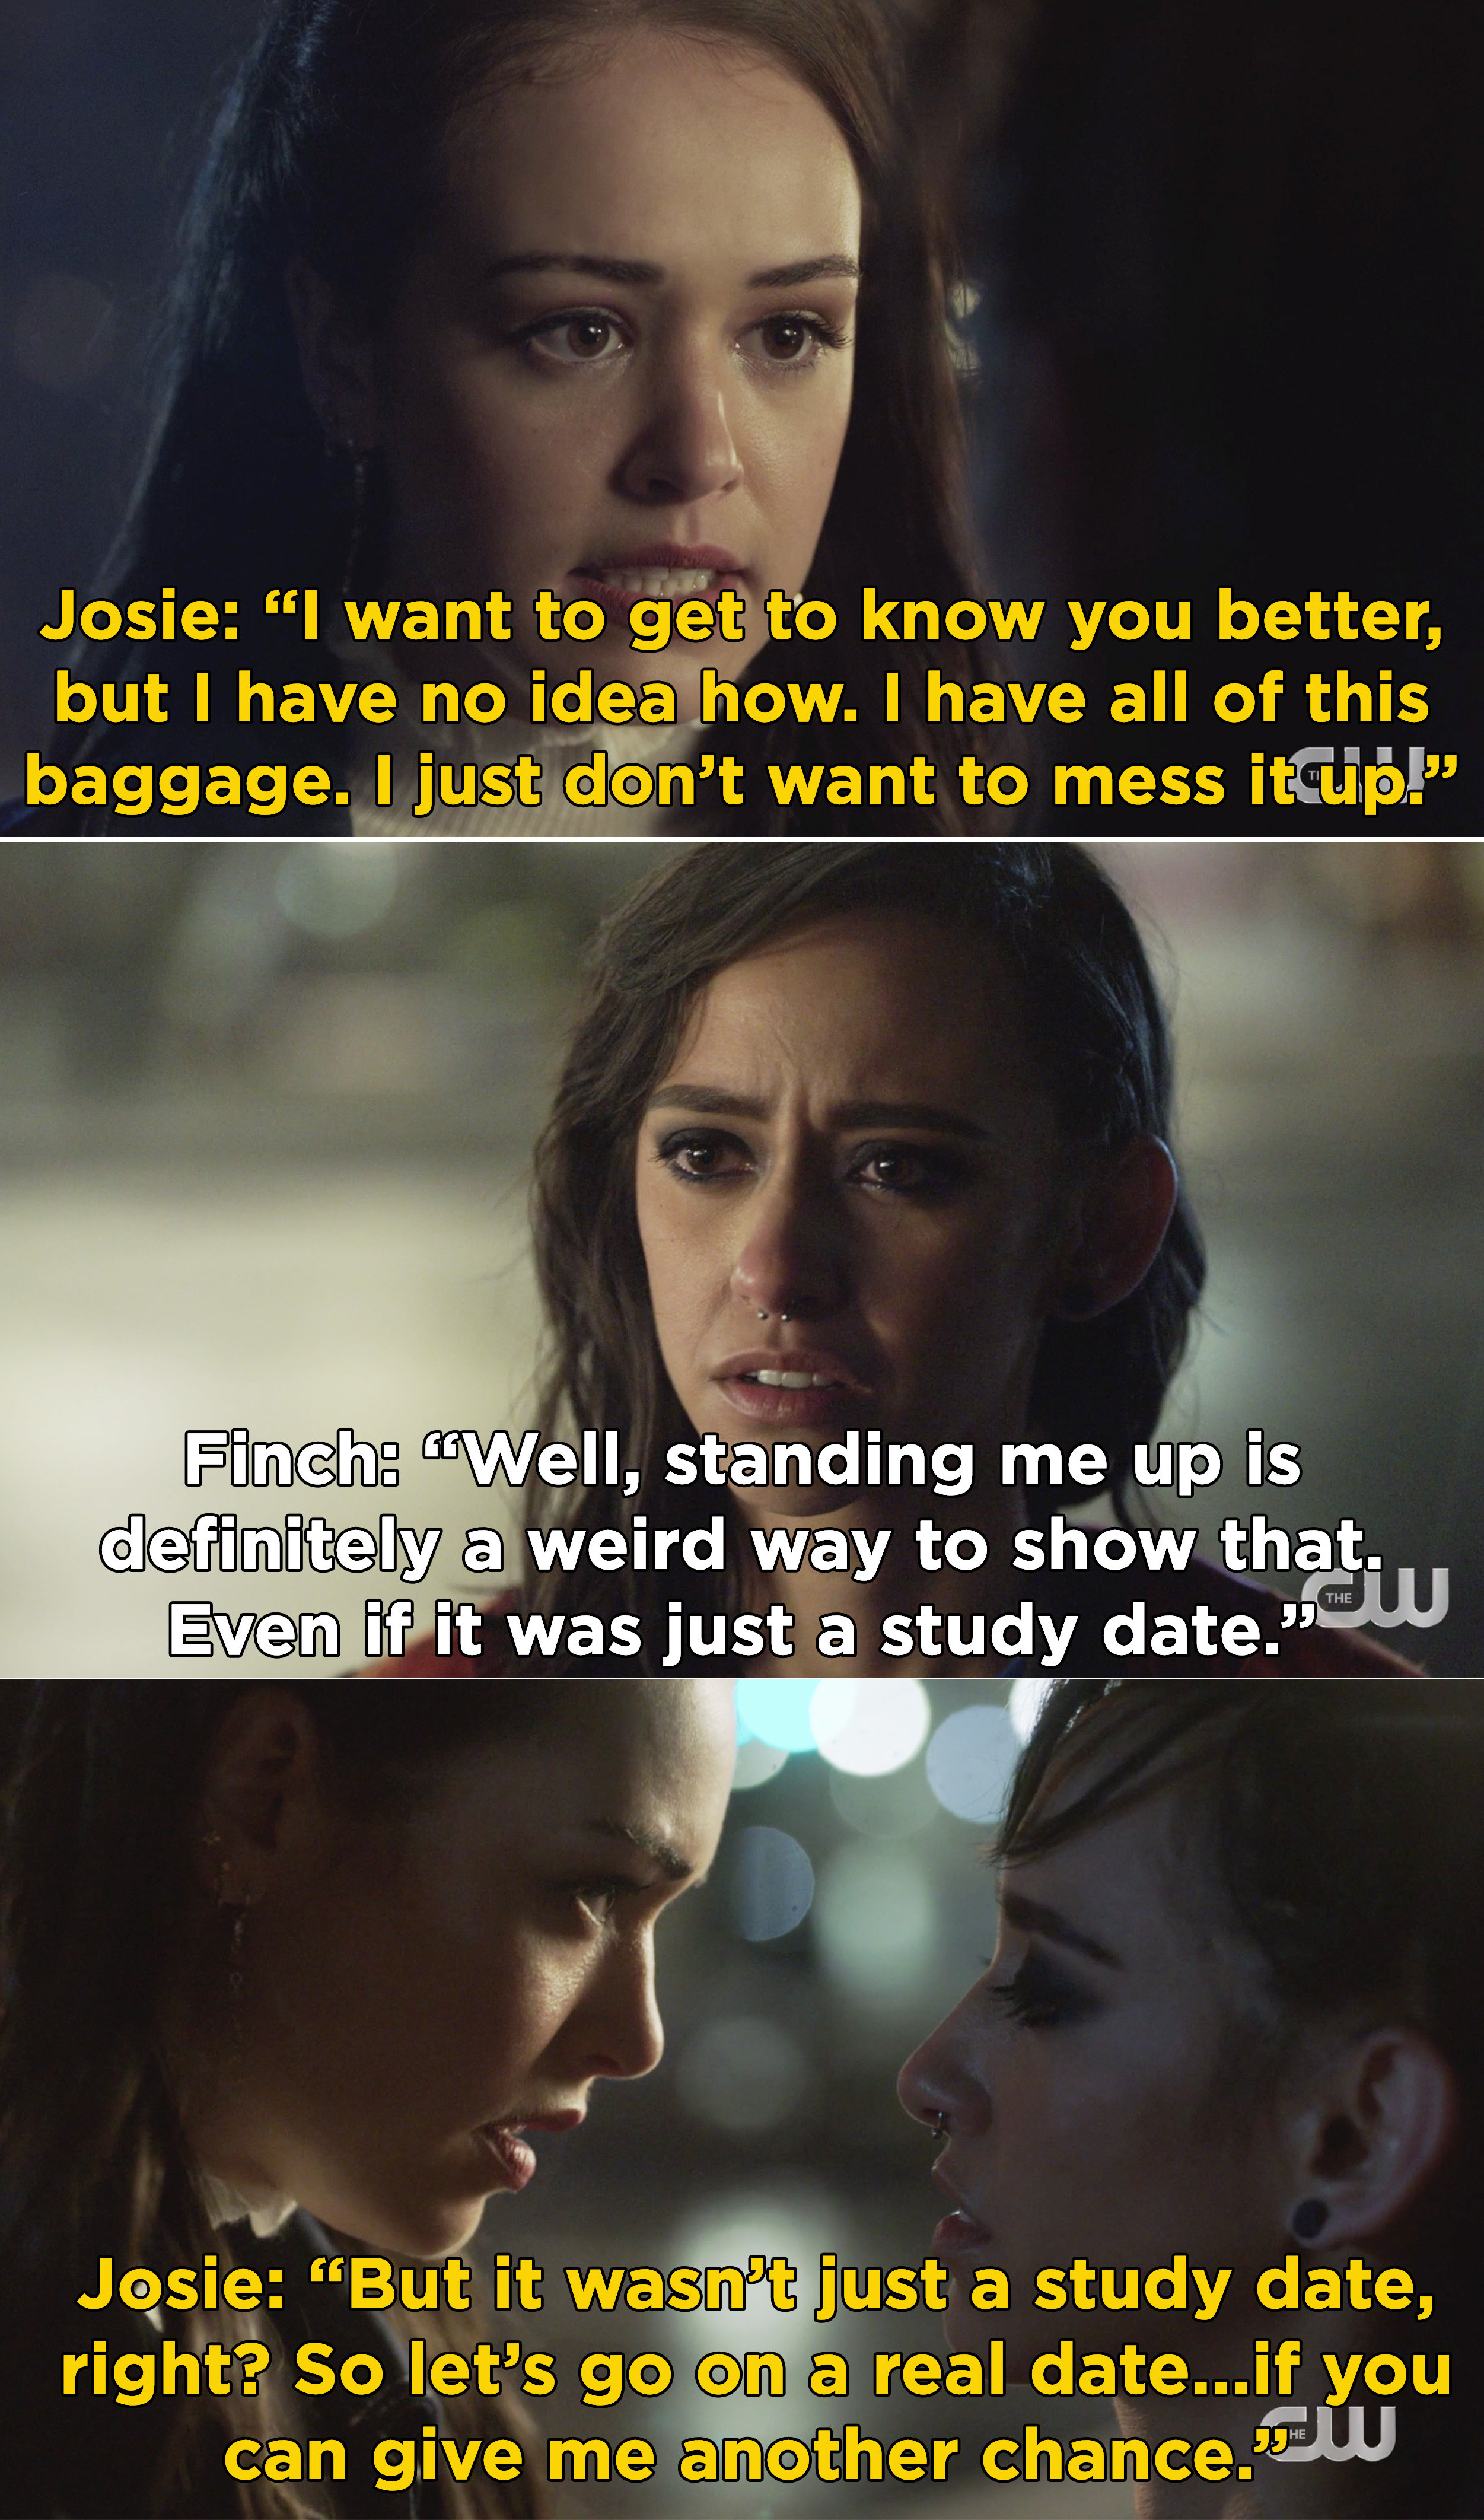 Josie telling Finch that she wants to go on a real date with her and that she doesn't want to mess this up